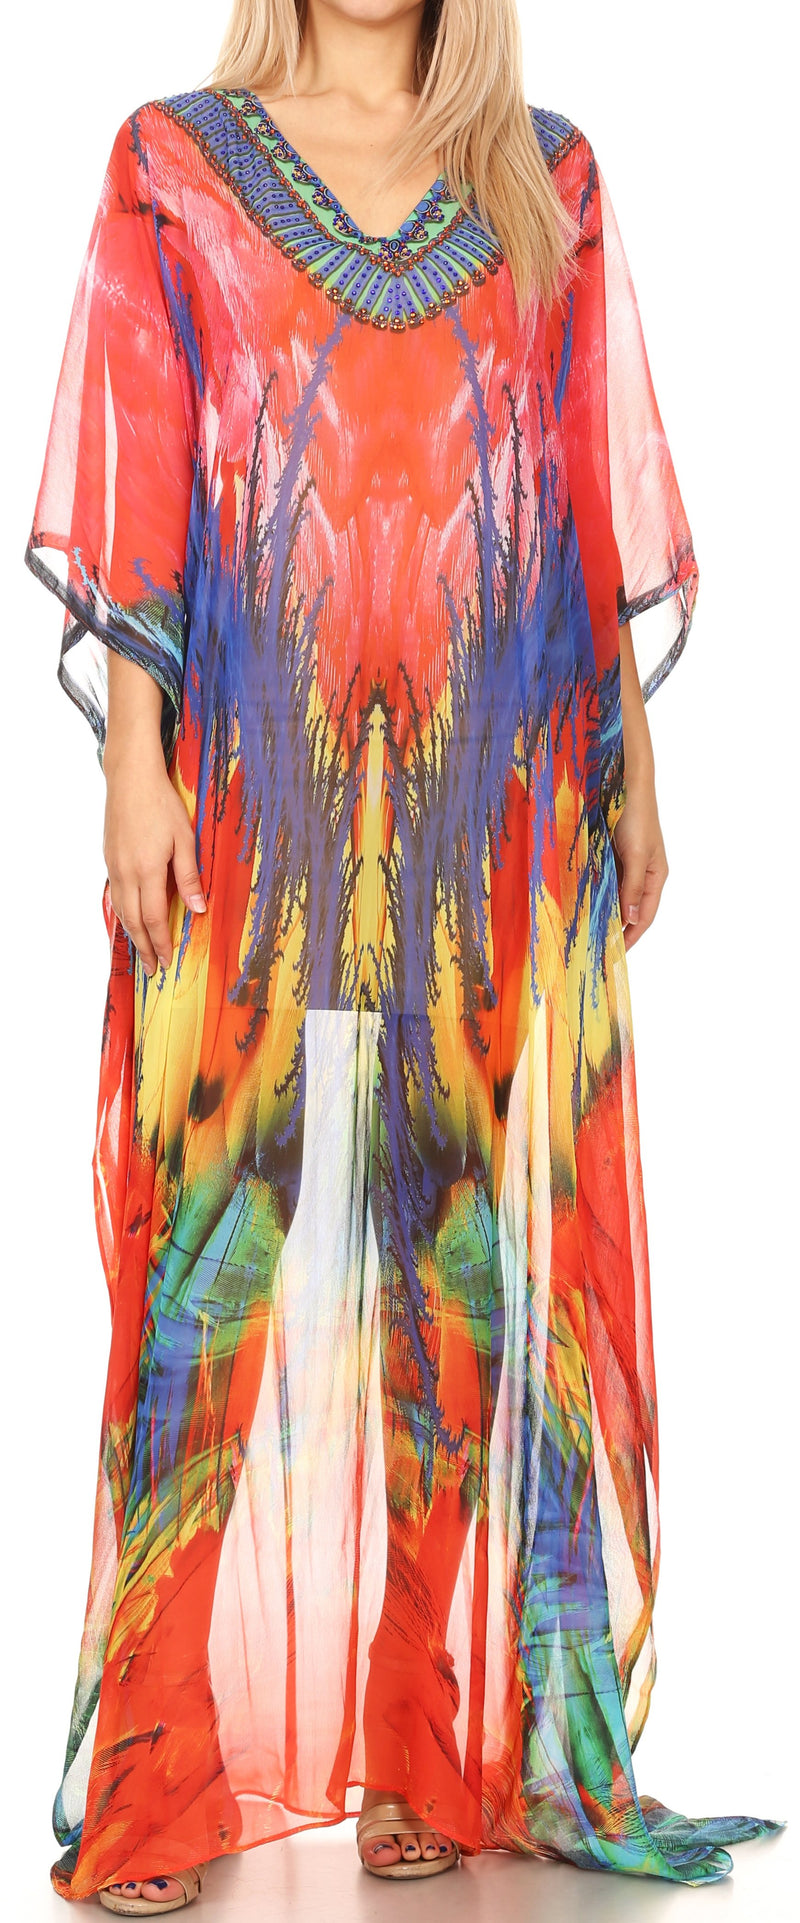 Sakkas Wilder  Printed Design Long Sheer Rhinestone Caftan Dress / Cover Up